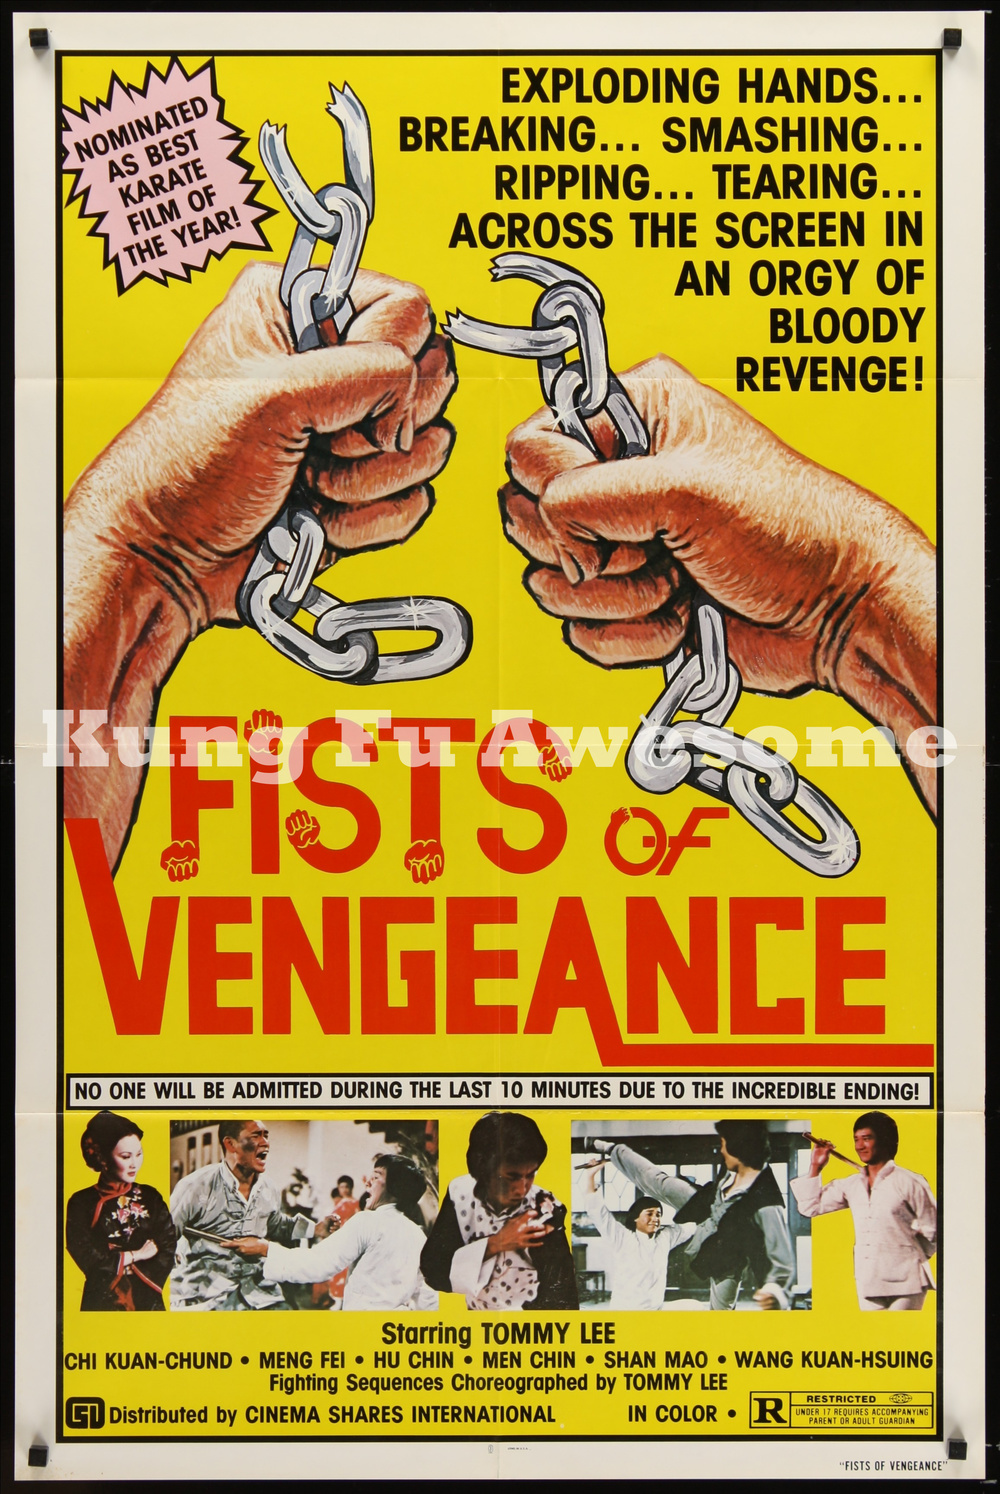 fists_of_vengeance_NZ03181_L.jpg